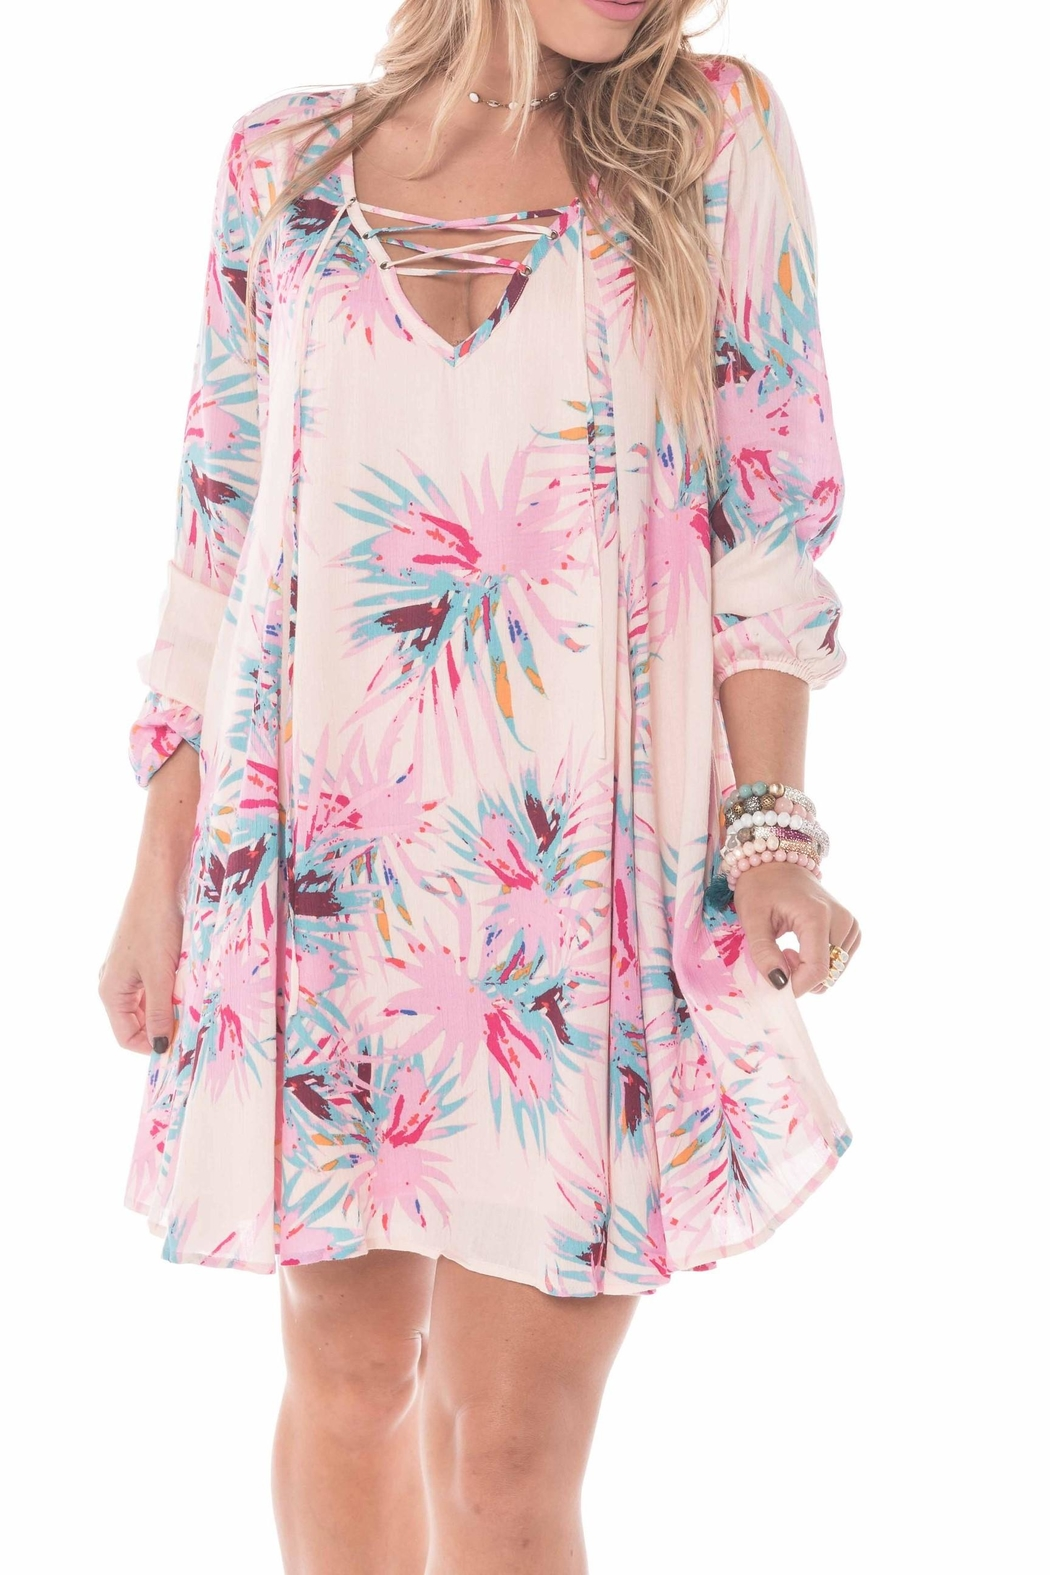 Buddy Love Zion Paradise Dress - Main Image